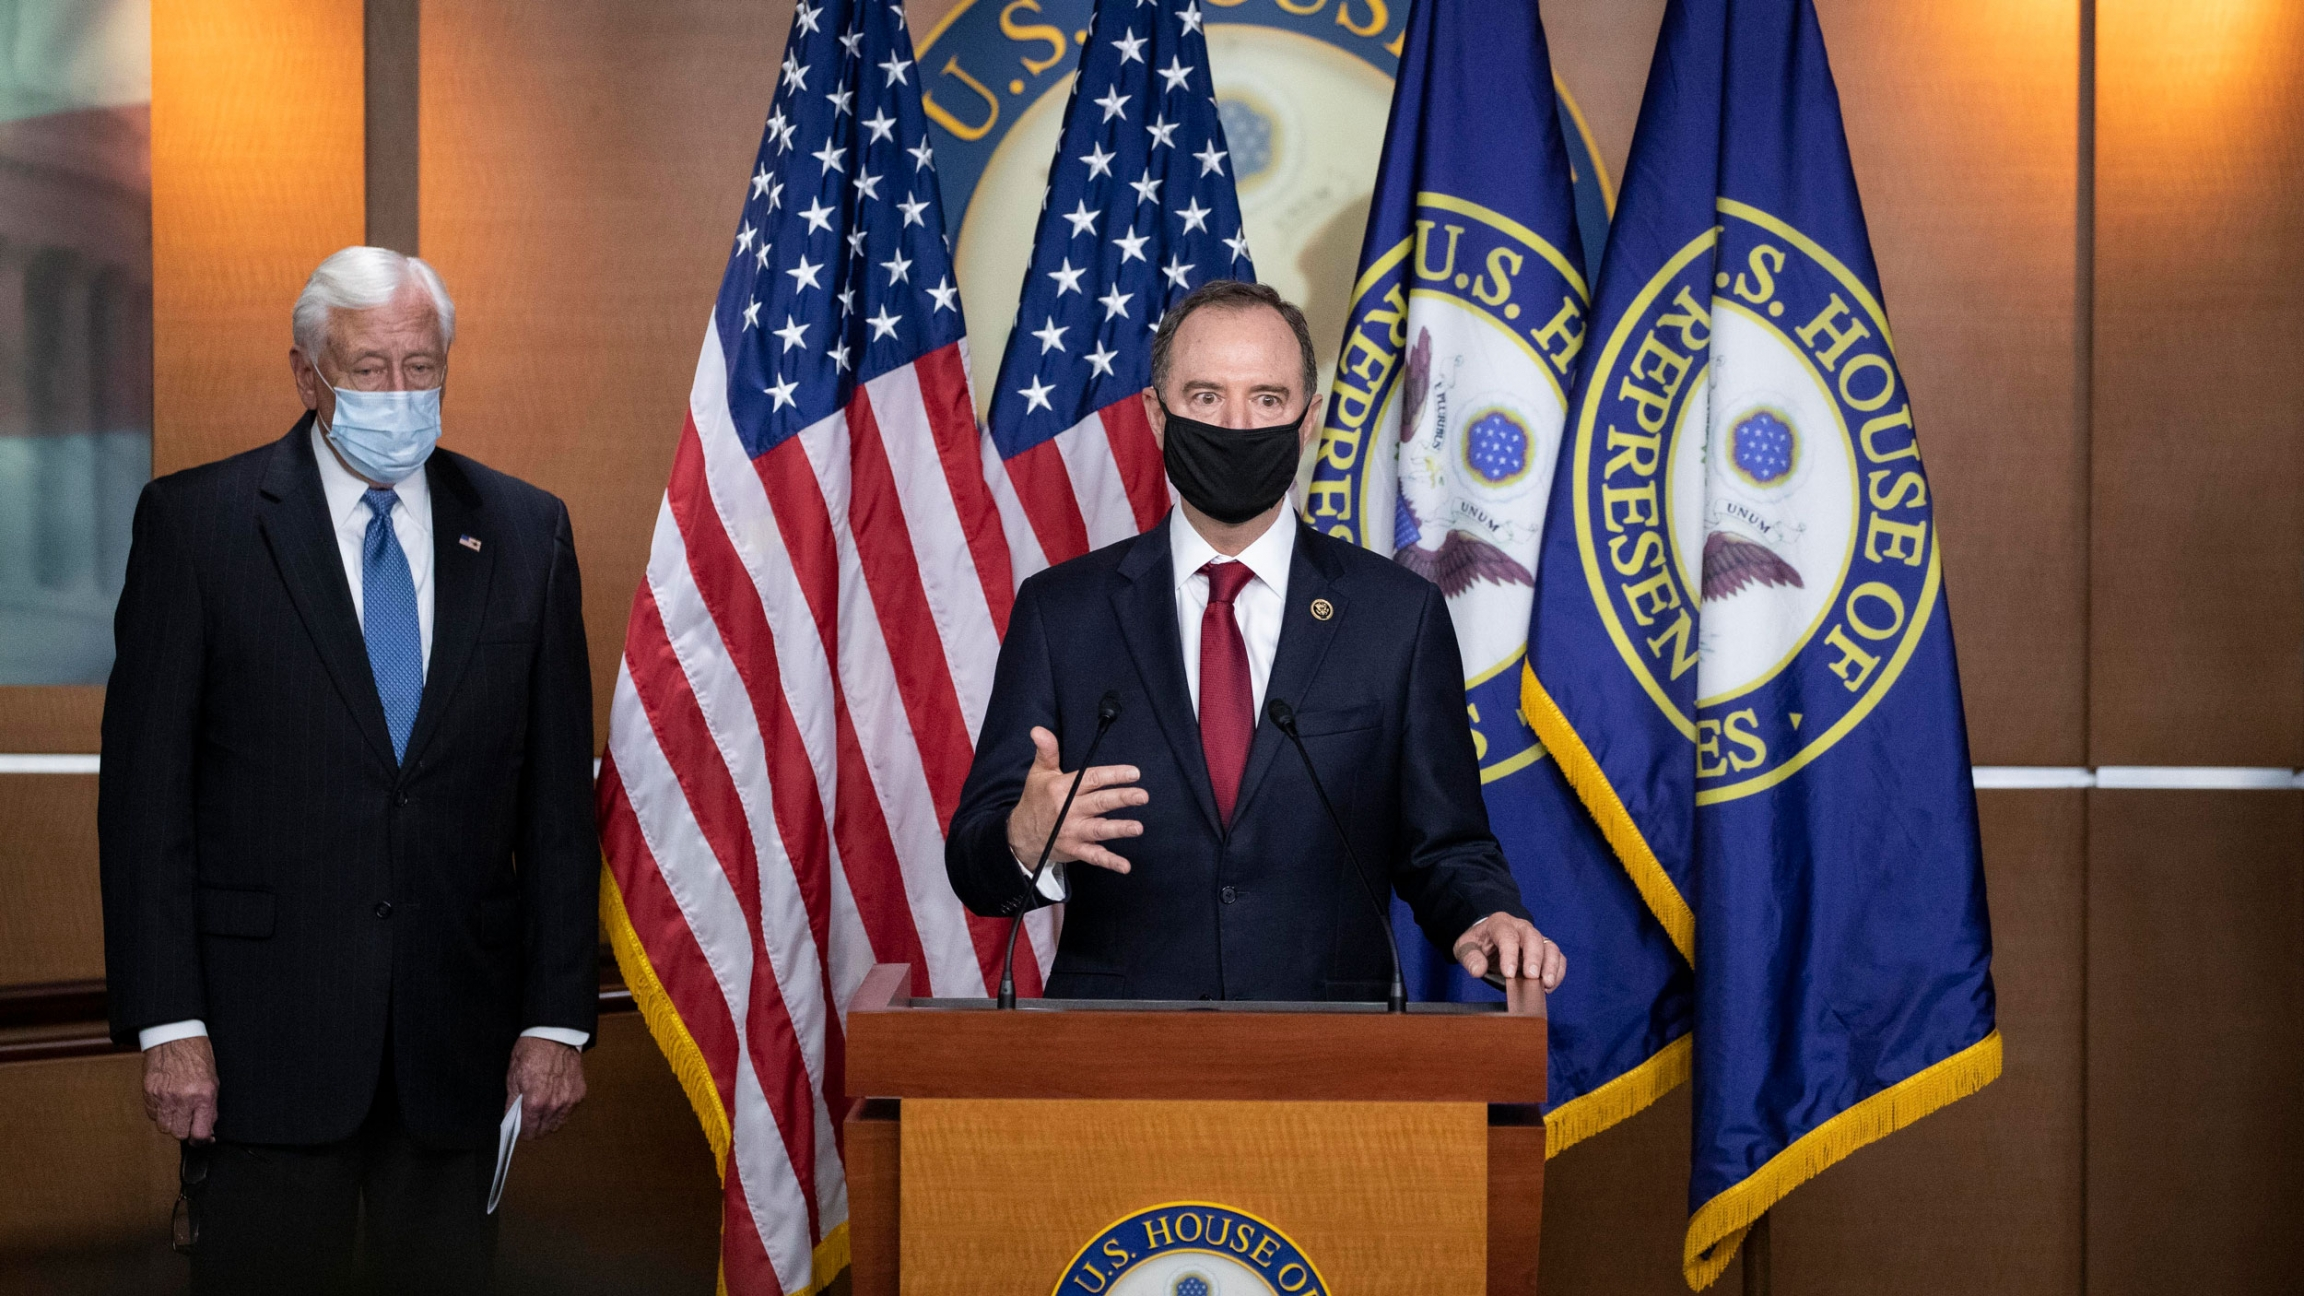 Rep. Adam Schiff is shown wearing a black face mask and standing at a wooden podium with flags behind him.